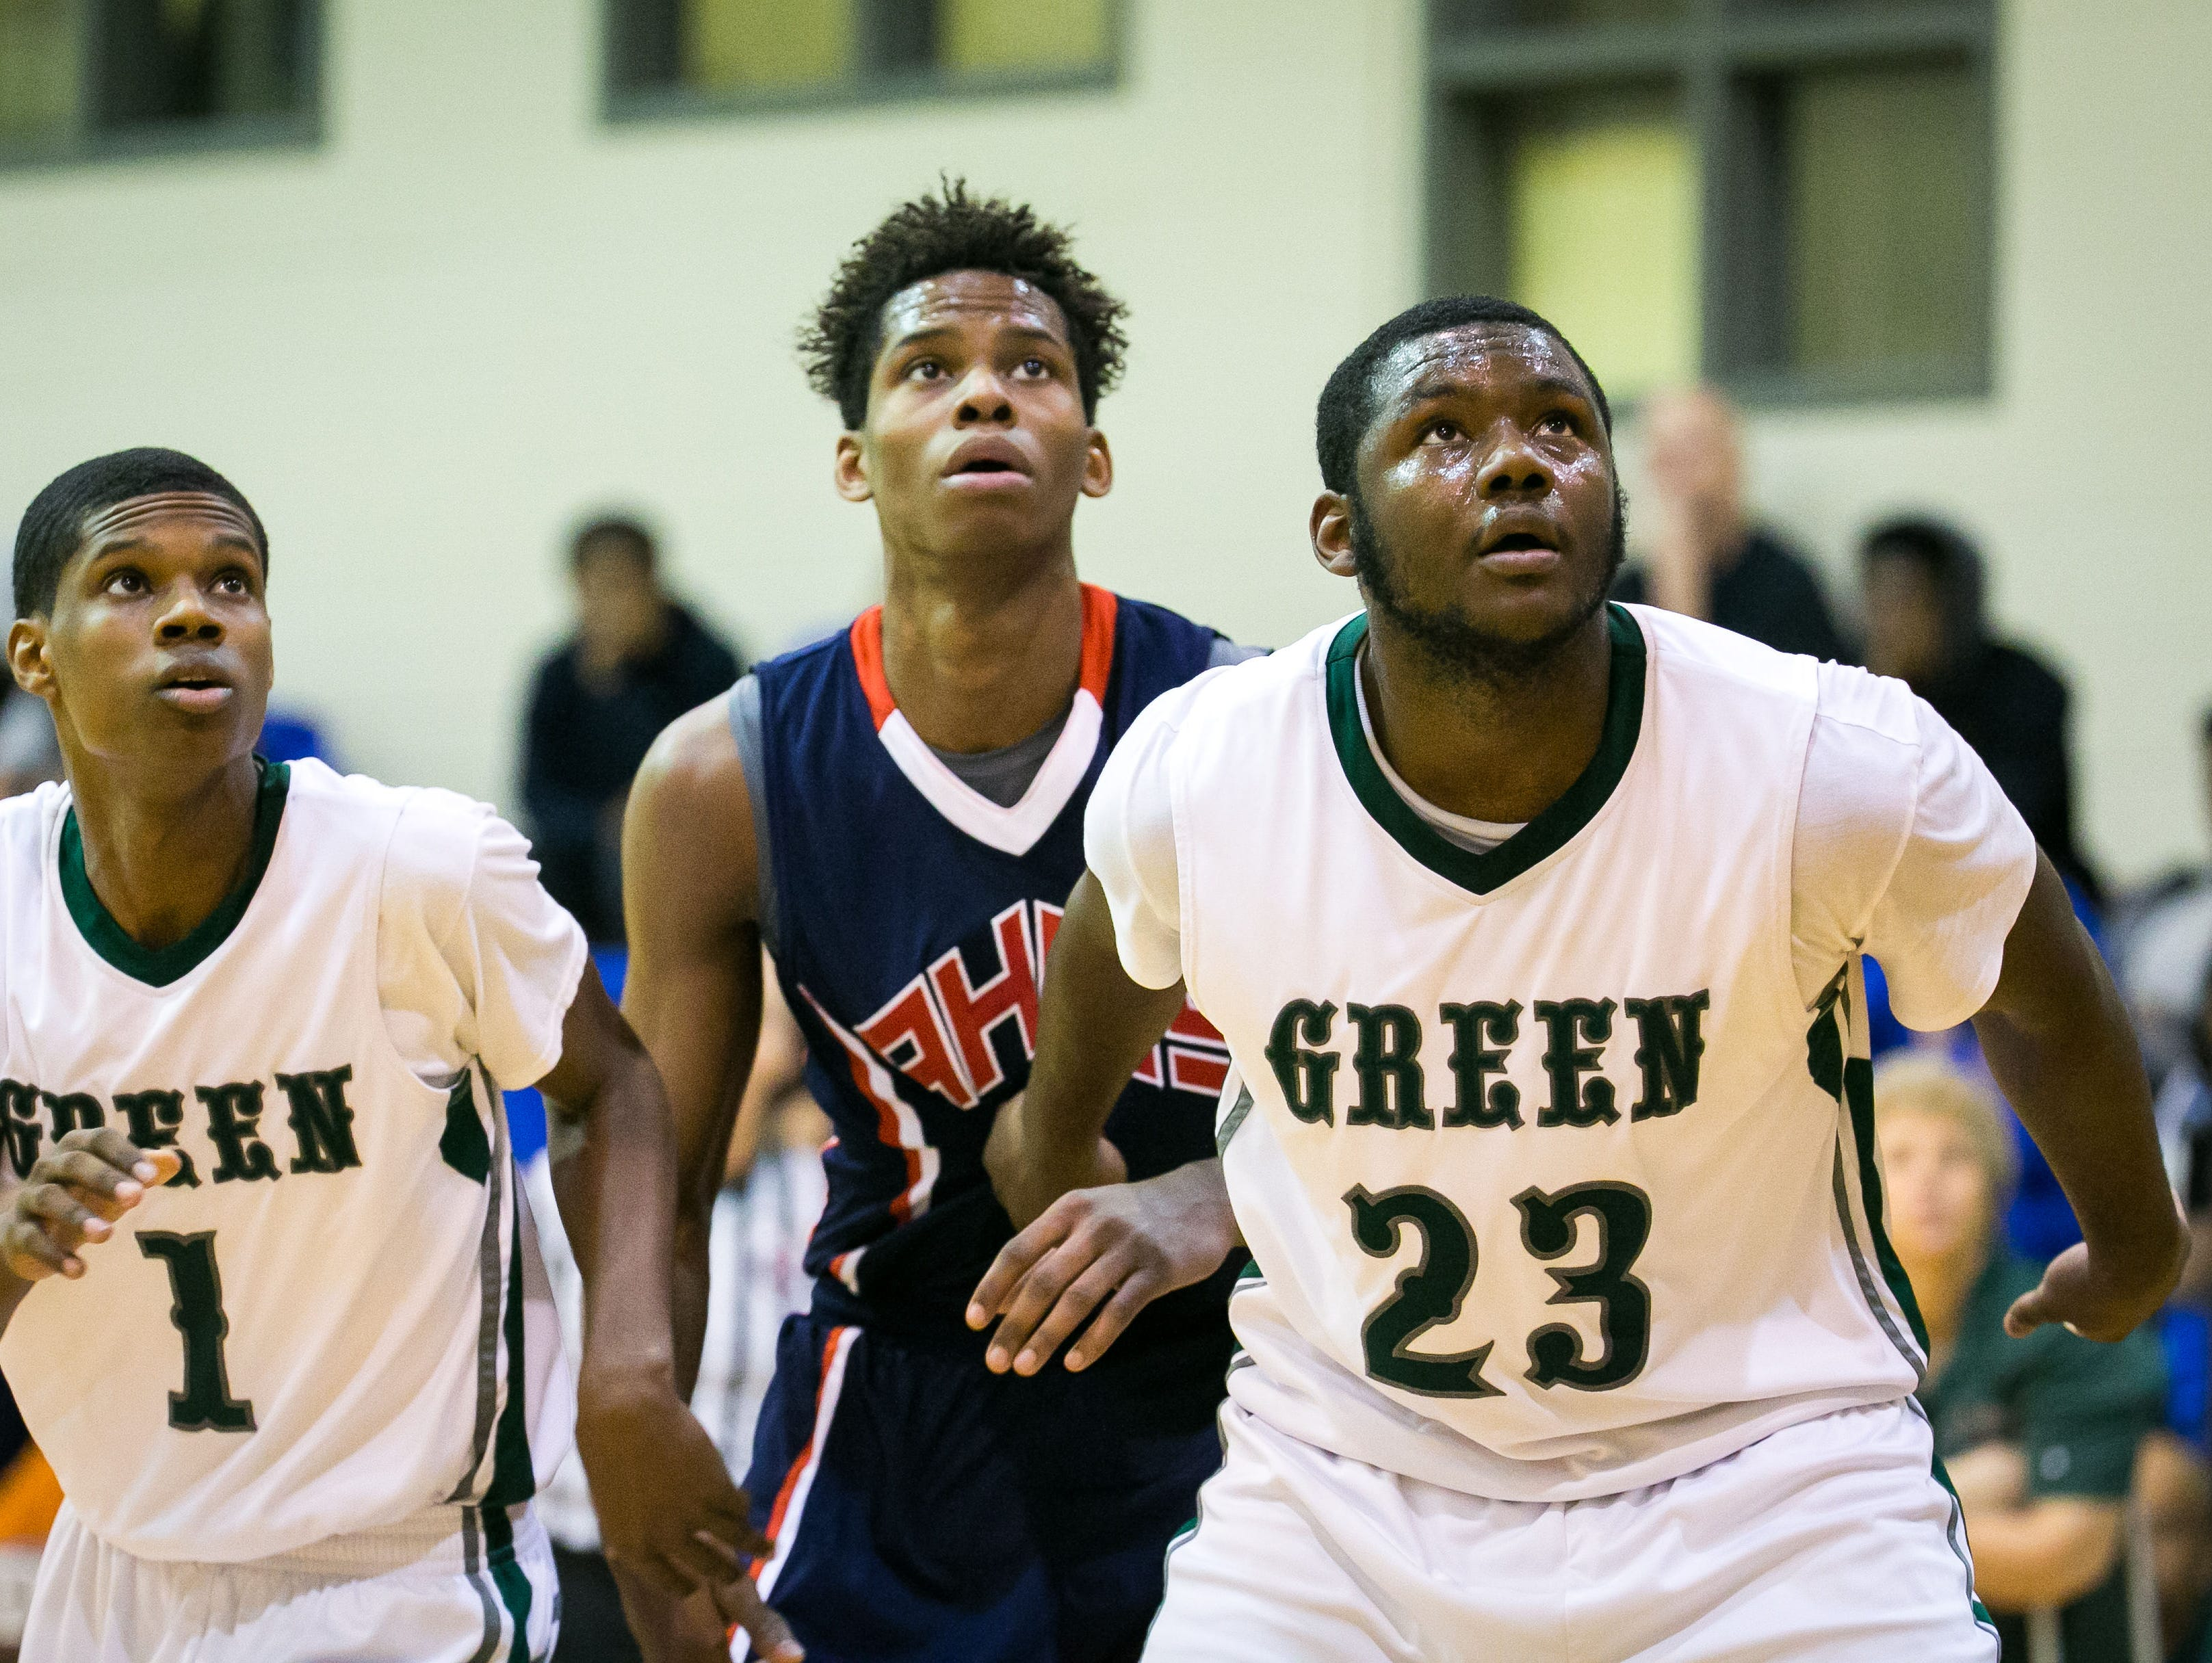 Ronald Shipman-Scott (right) of Mount Pleasant gets position for the rebound.